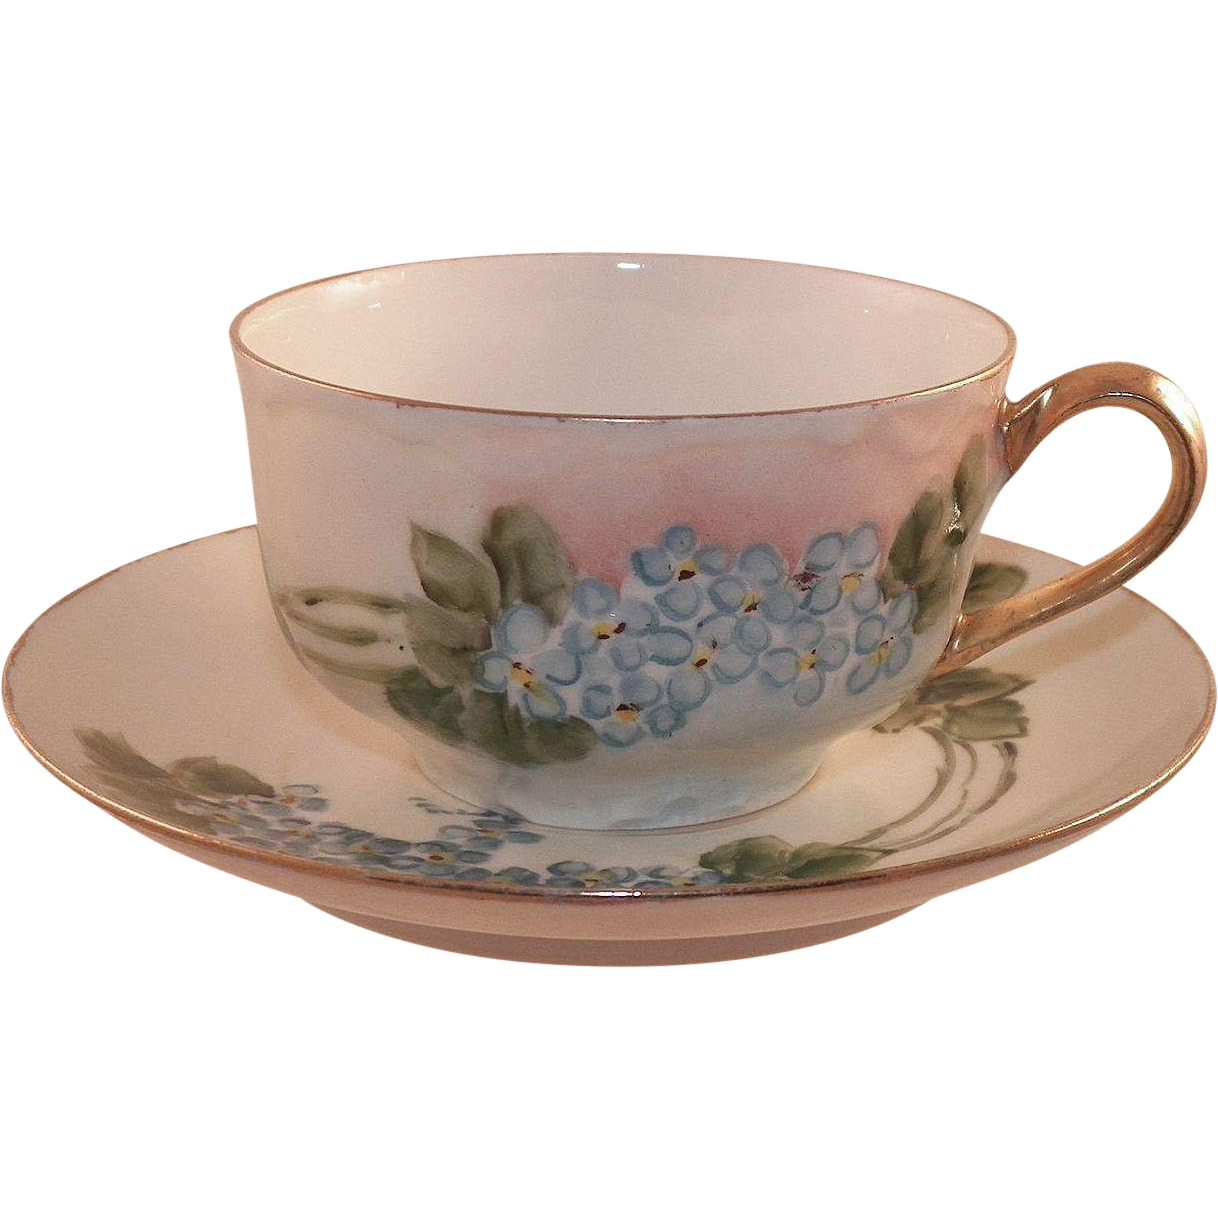 Vintage Haviland Limoges Hand Painted Floral Cup and Saucer